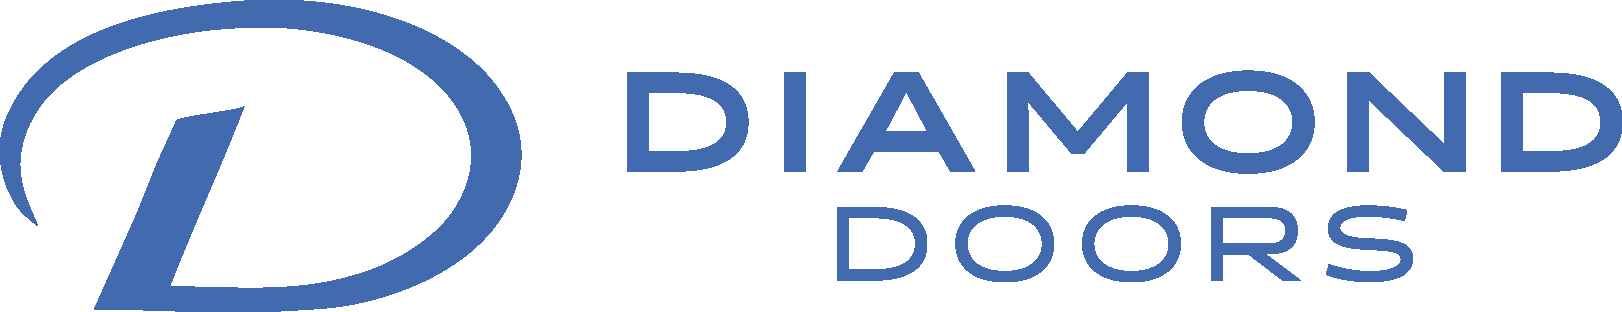 diamond doors logo